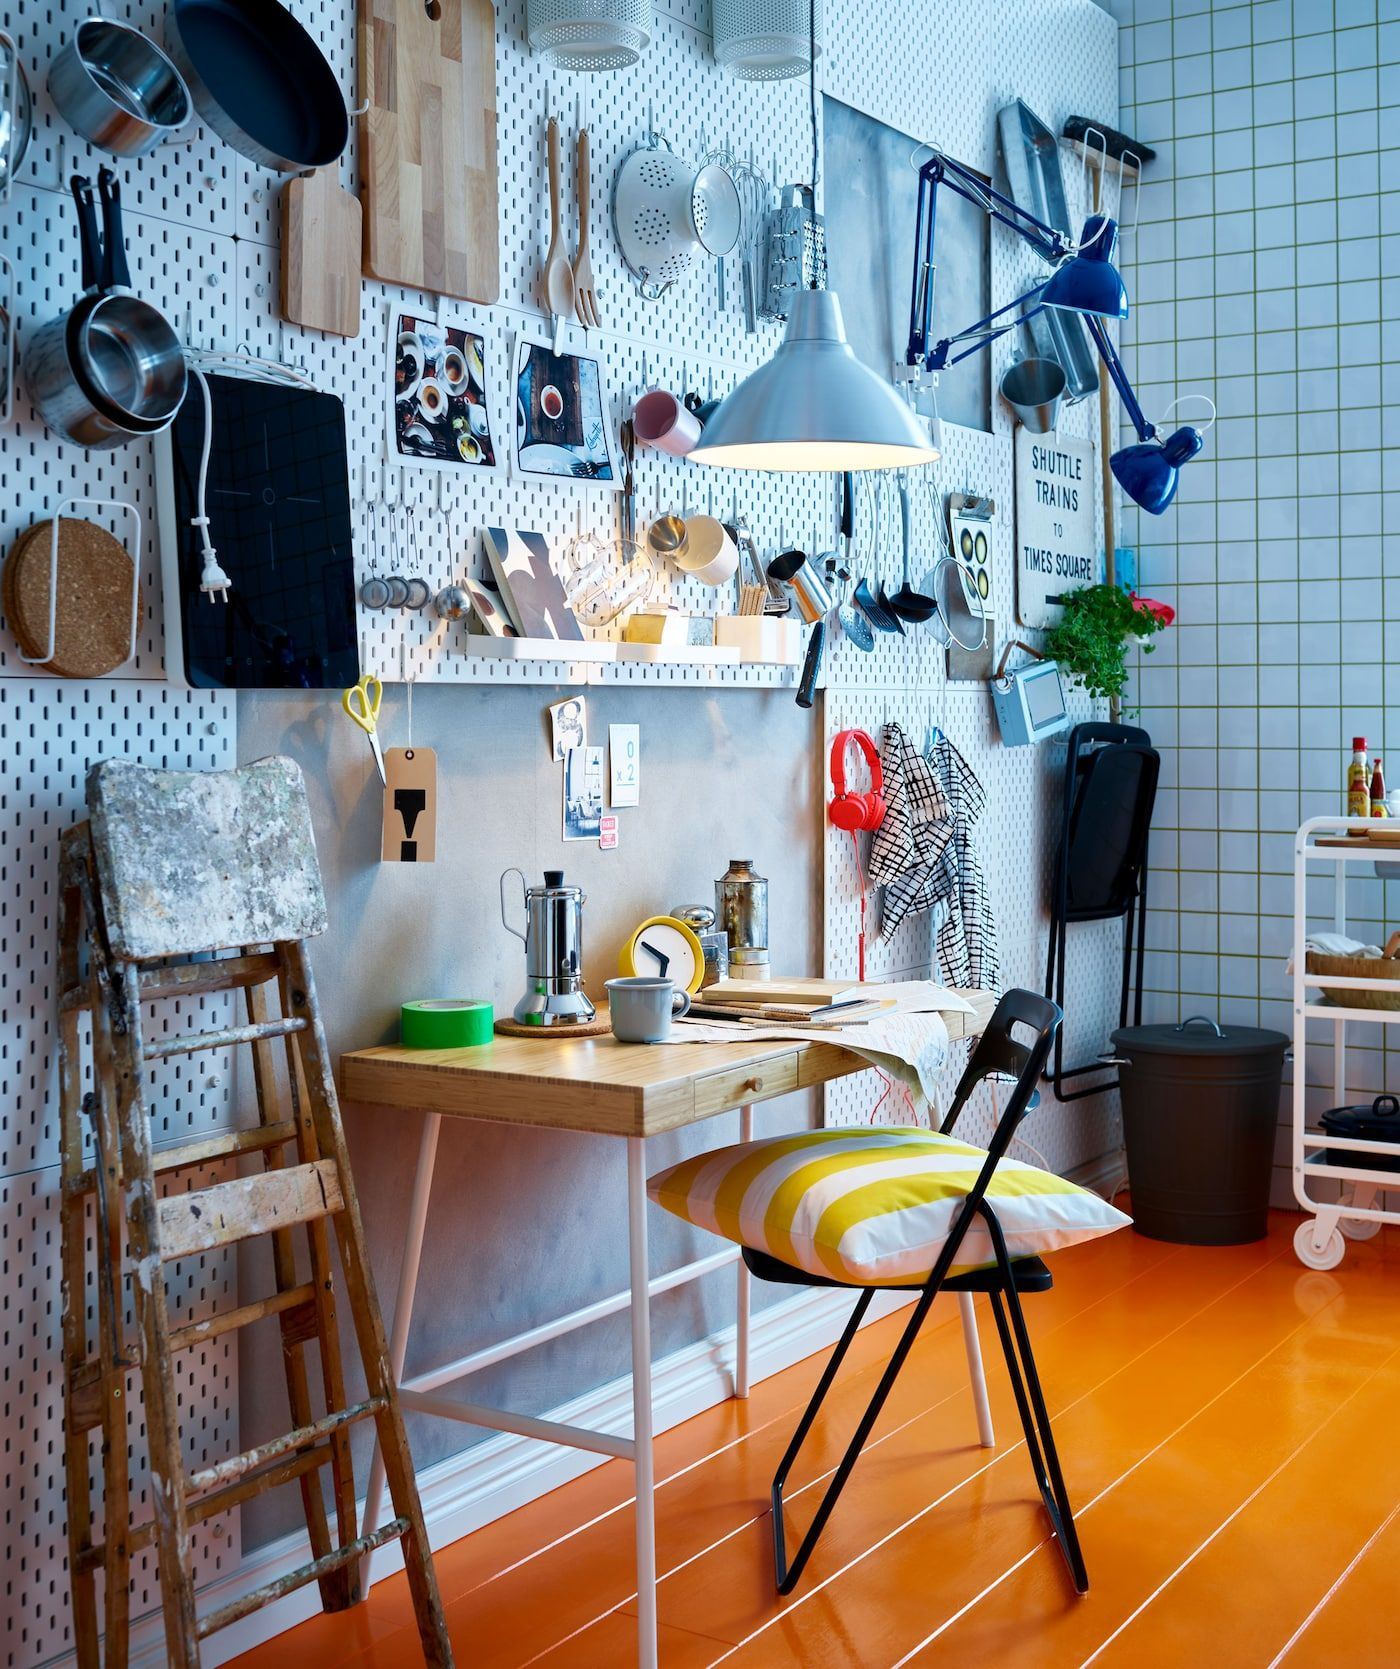 A shared home that turns friends into family Ikea